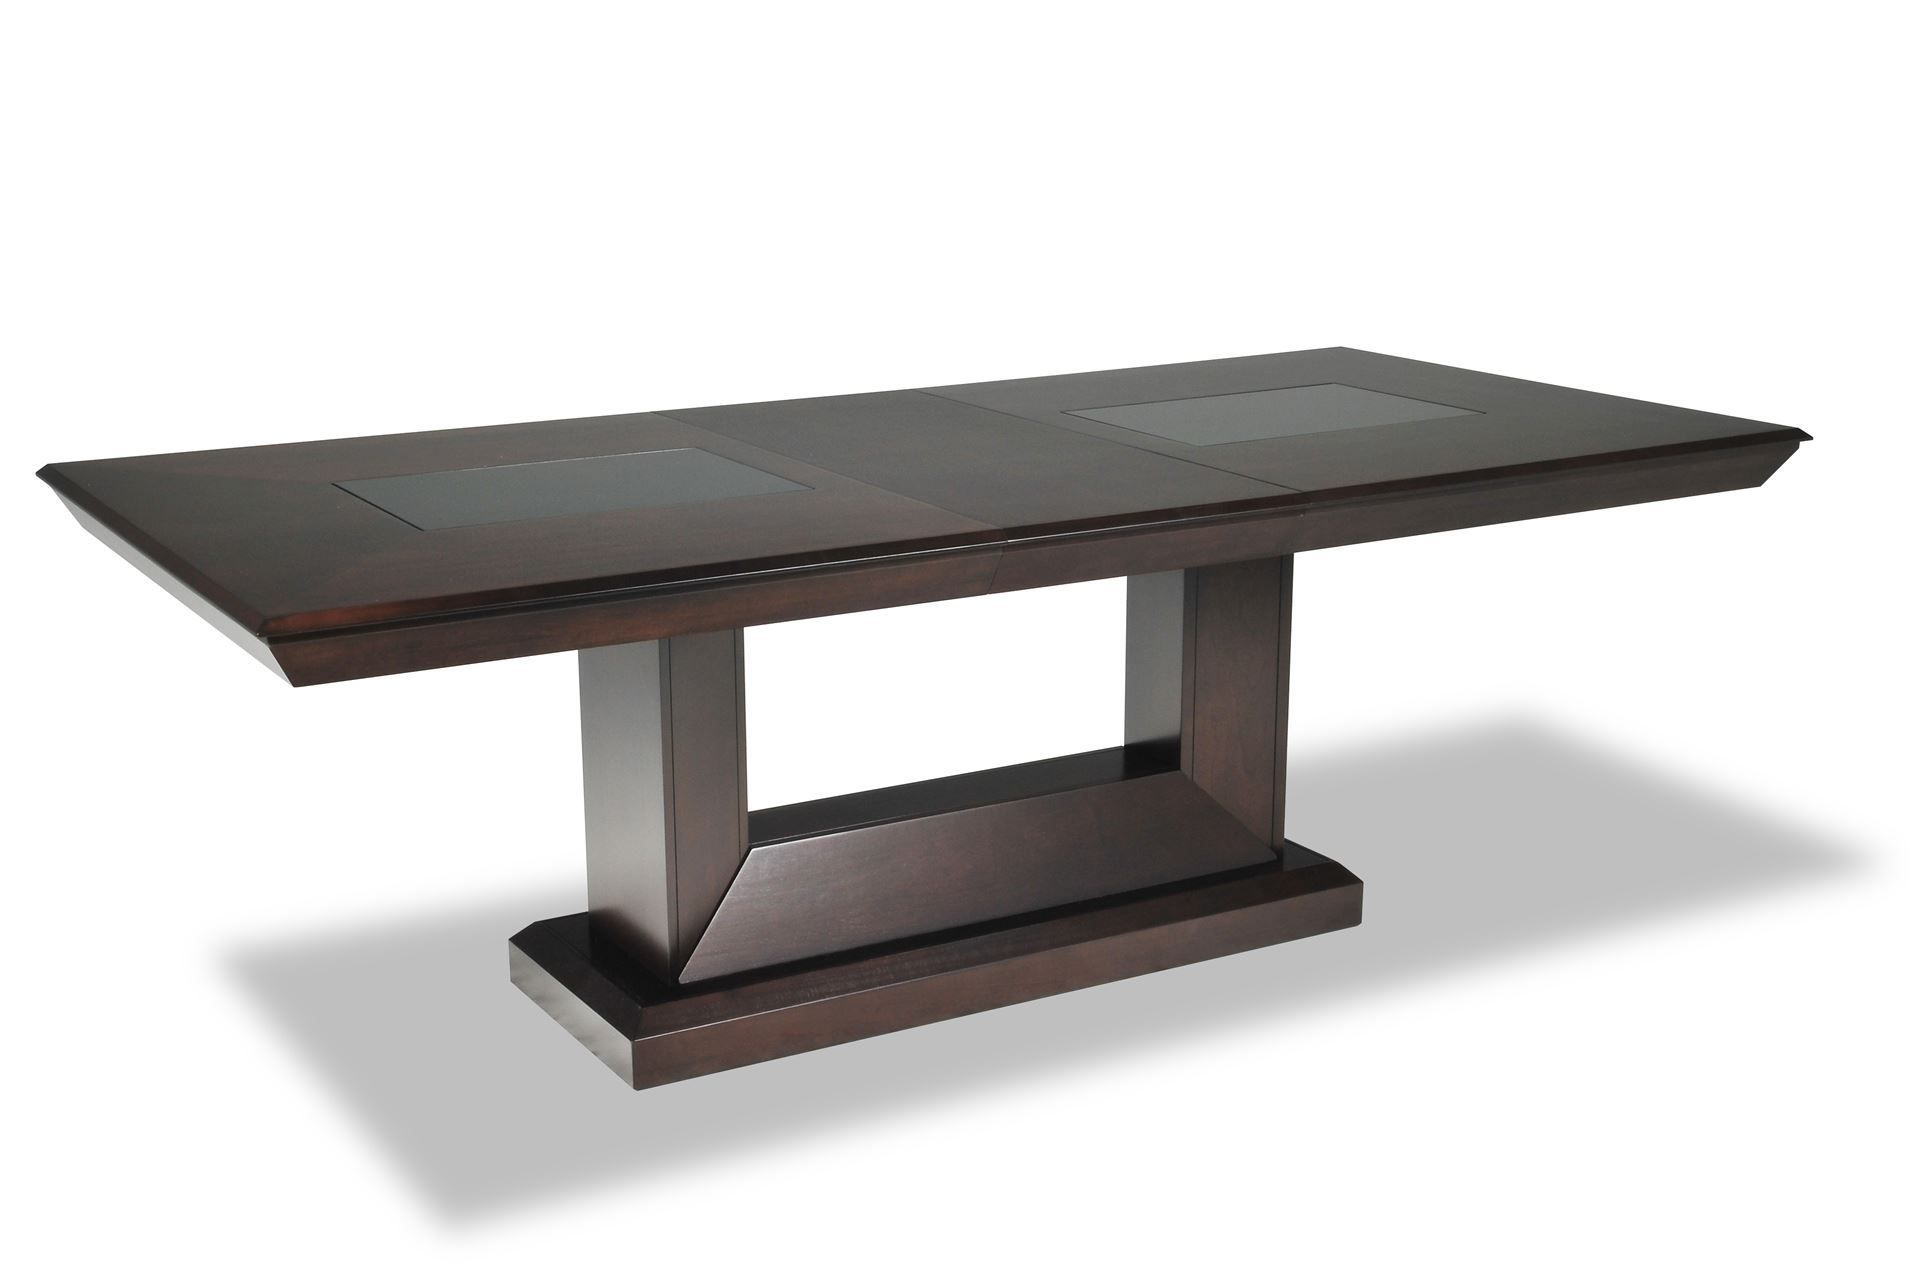 Shop Furniture Online Furniture Store Same Day Delivery Furniture Dining Table Luxury Dining Tables Furniture [ 1288 x 1911 Pixel ]